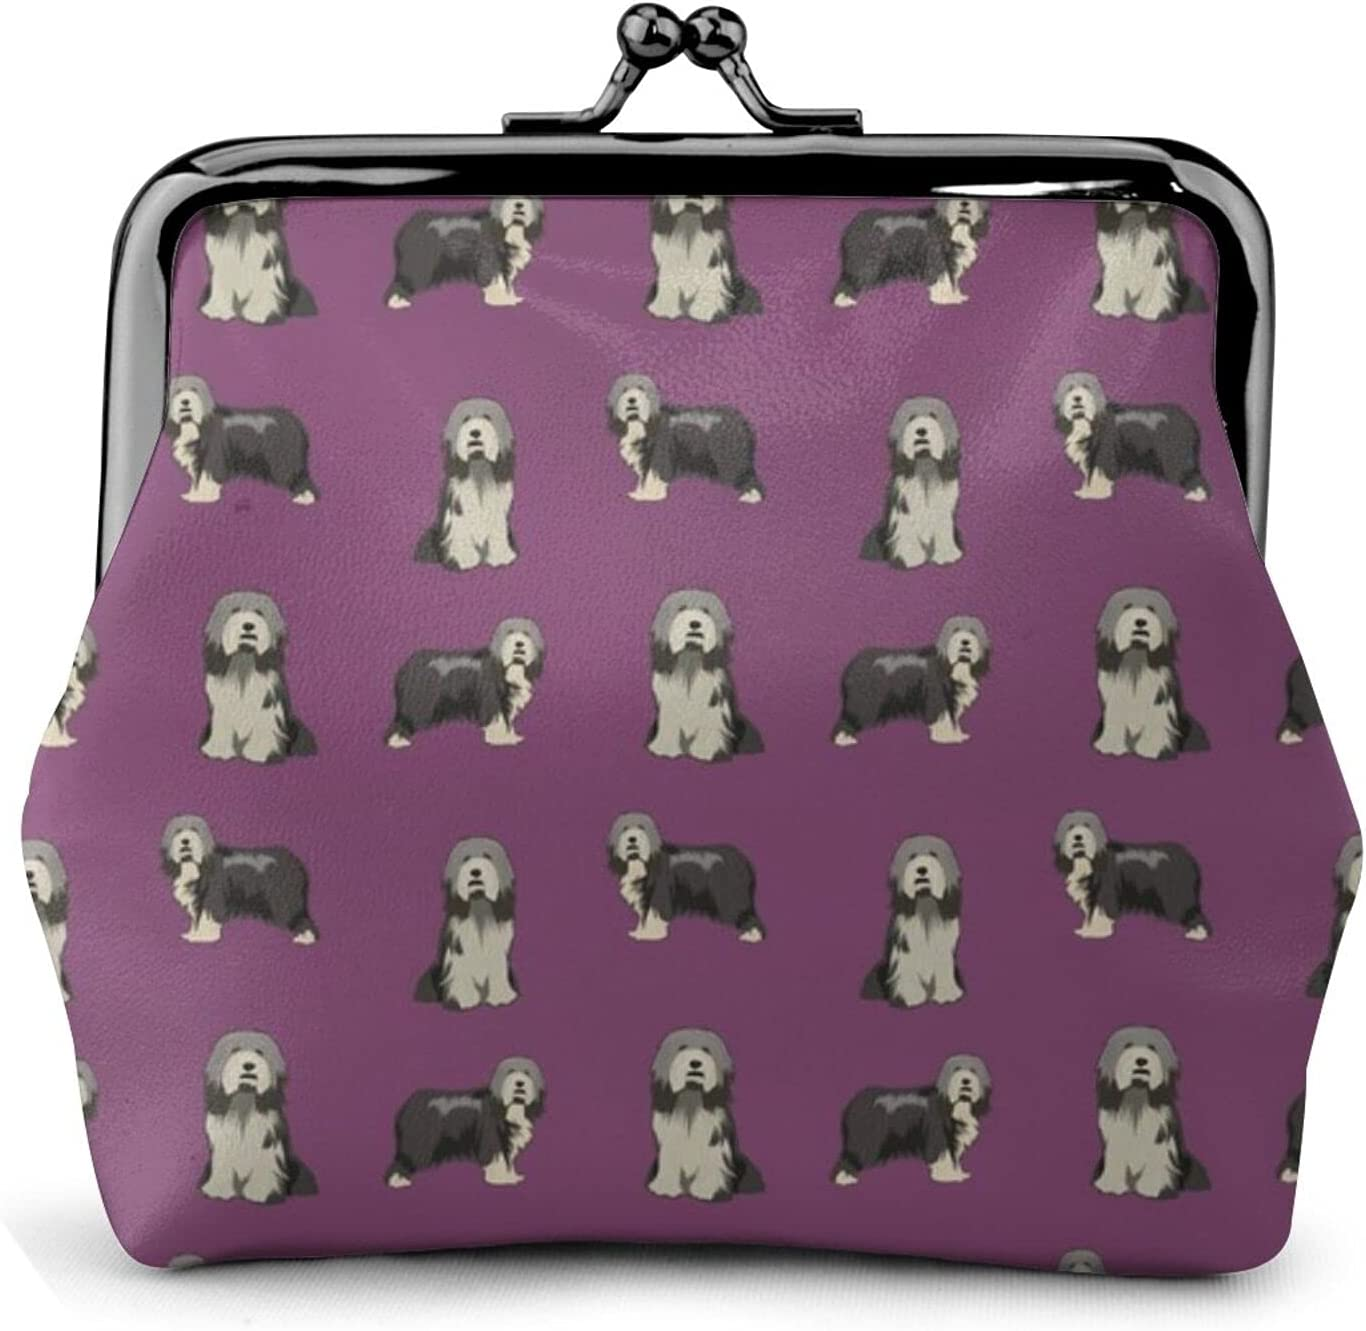 Bearded Collie Dog 298 Women'S Wallet Buckle Coin Purses Pouch Kiss-lock Change Travel Makeup Wallets, Black, One Size